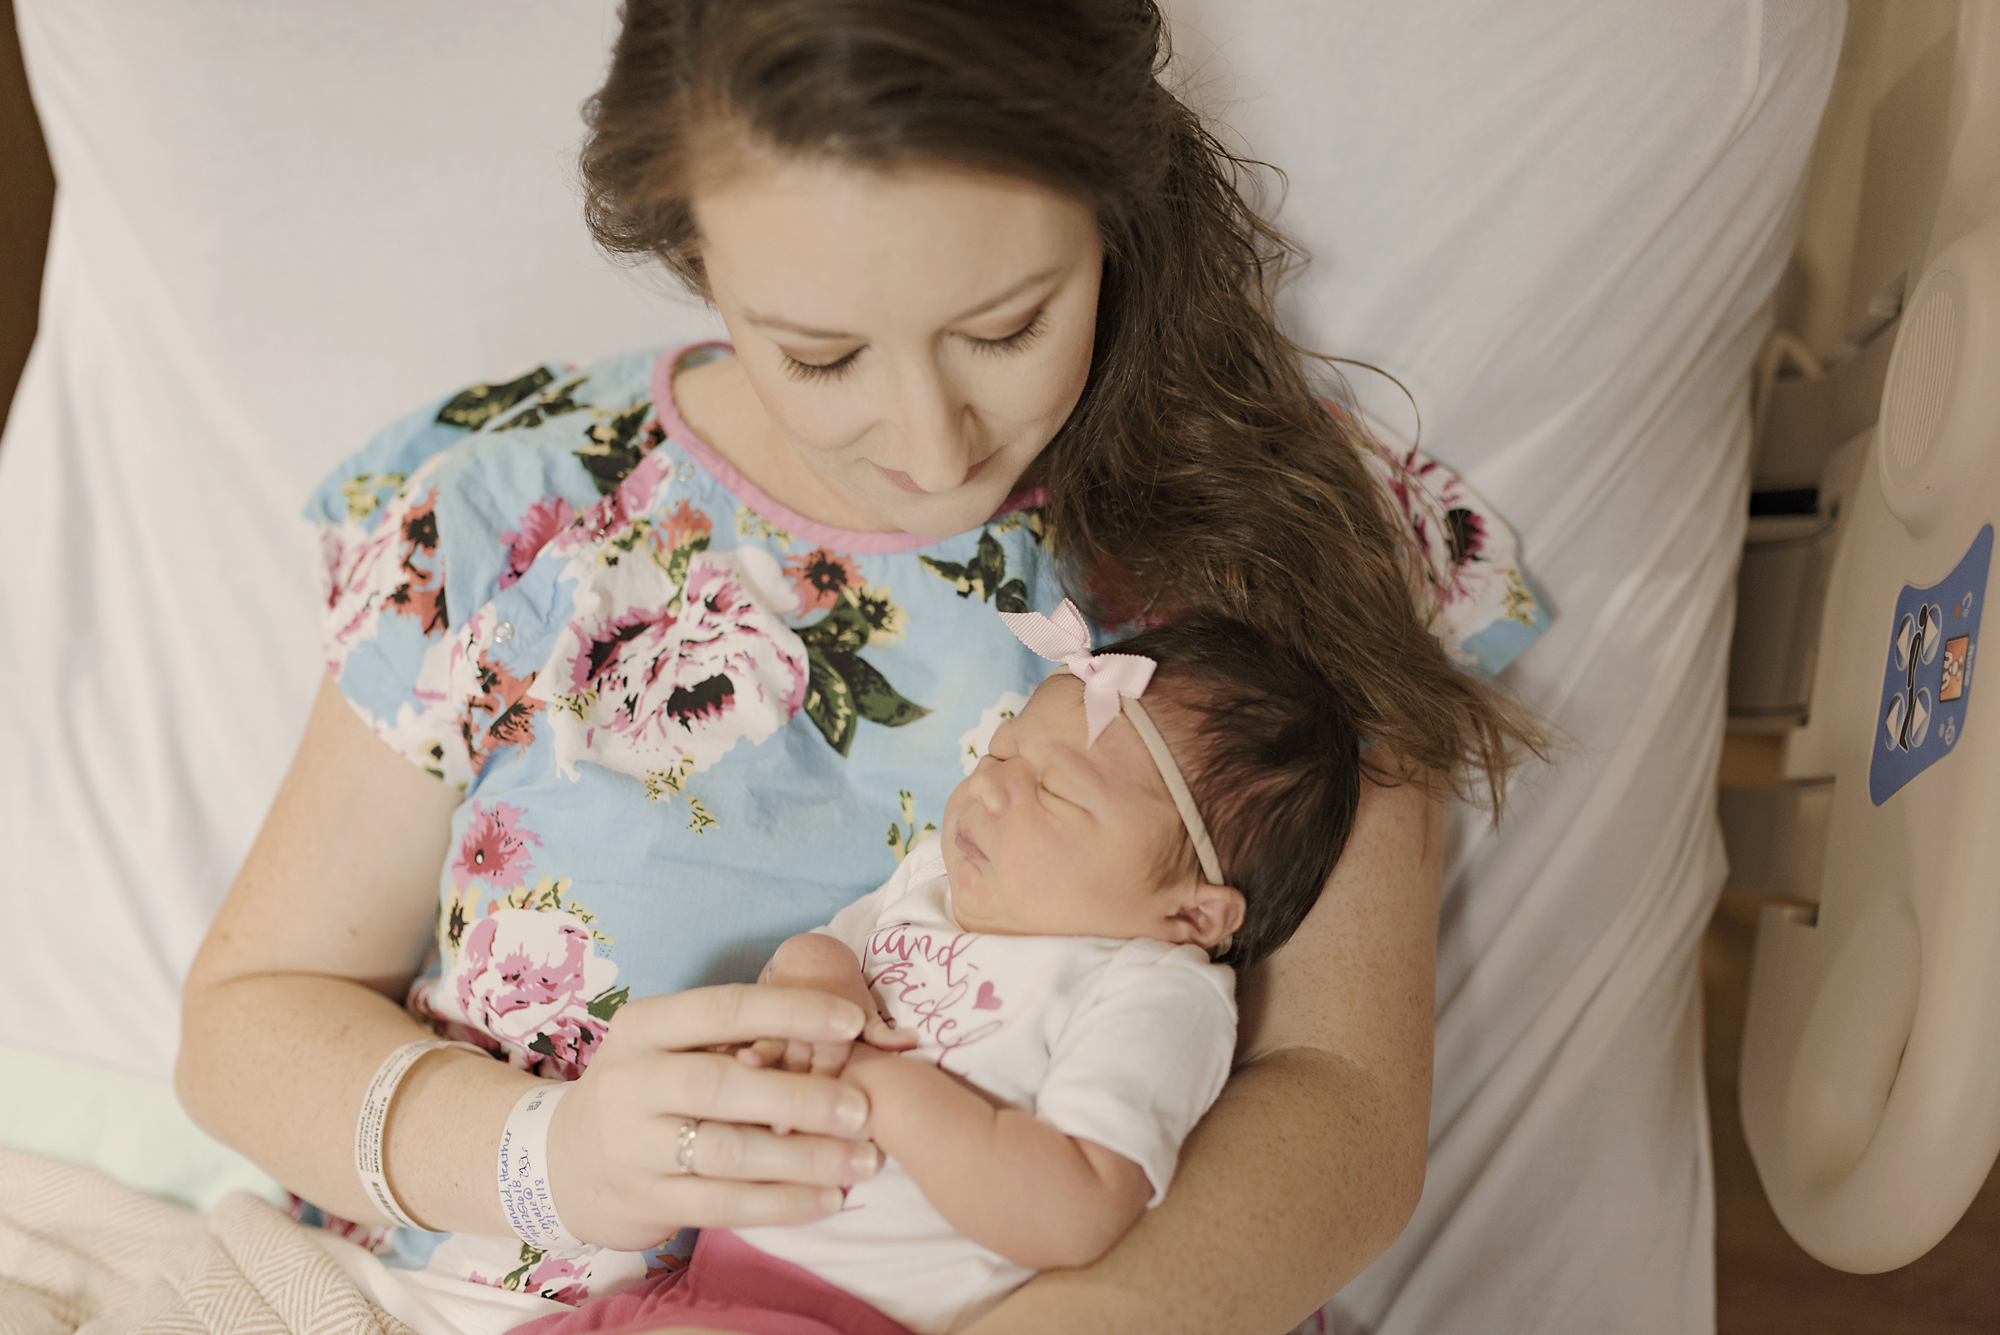 Warner Robins Birth Photographer  _ Warner Robins, GA Newborn & Birth Photographer _ Maternity _ Birth  _ Houston county_Macon Birth Photographer_Warner Robins Newborn Photographer